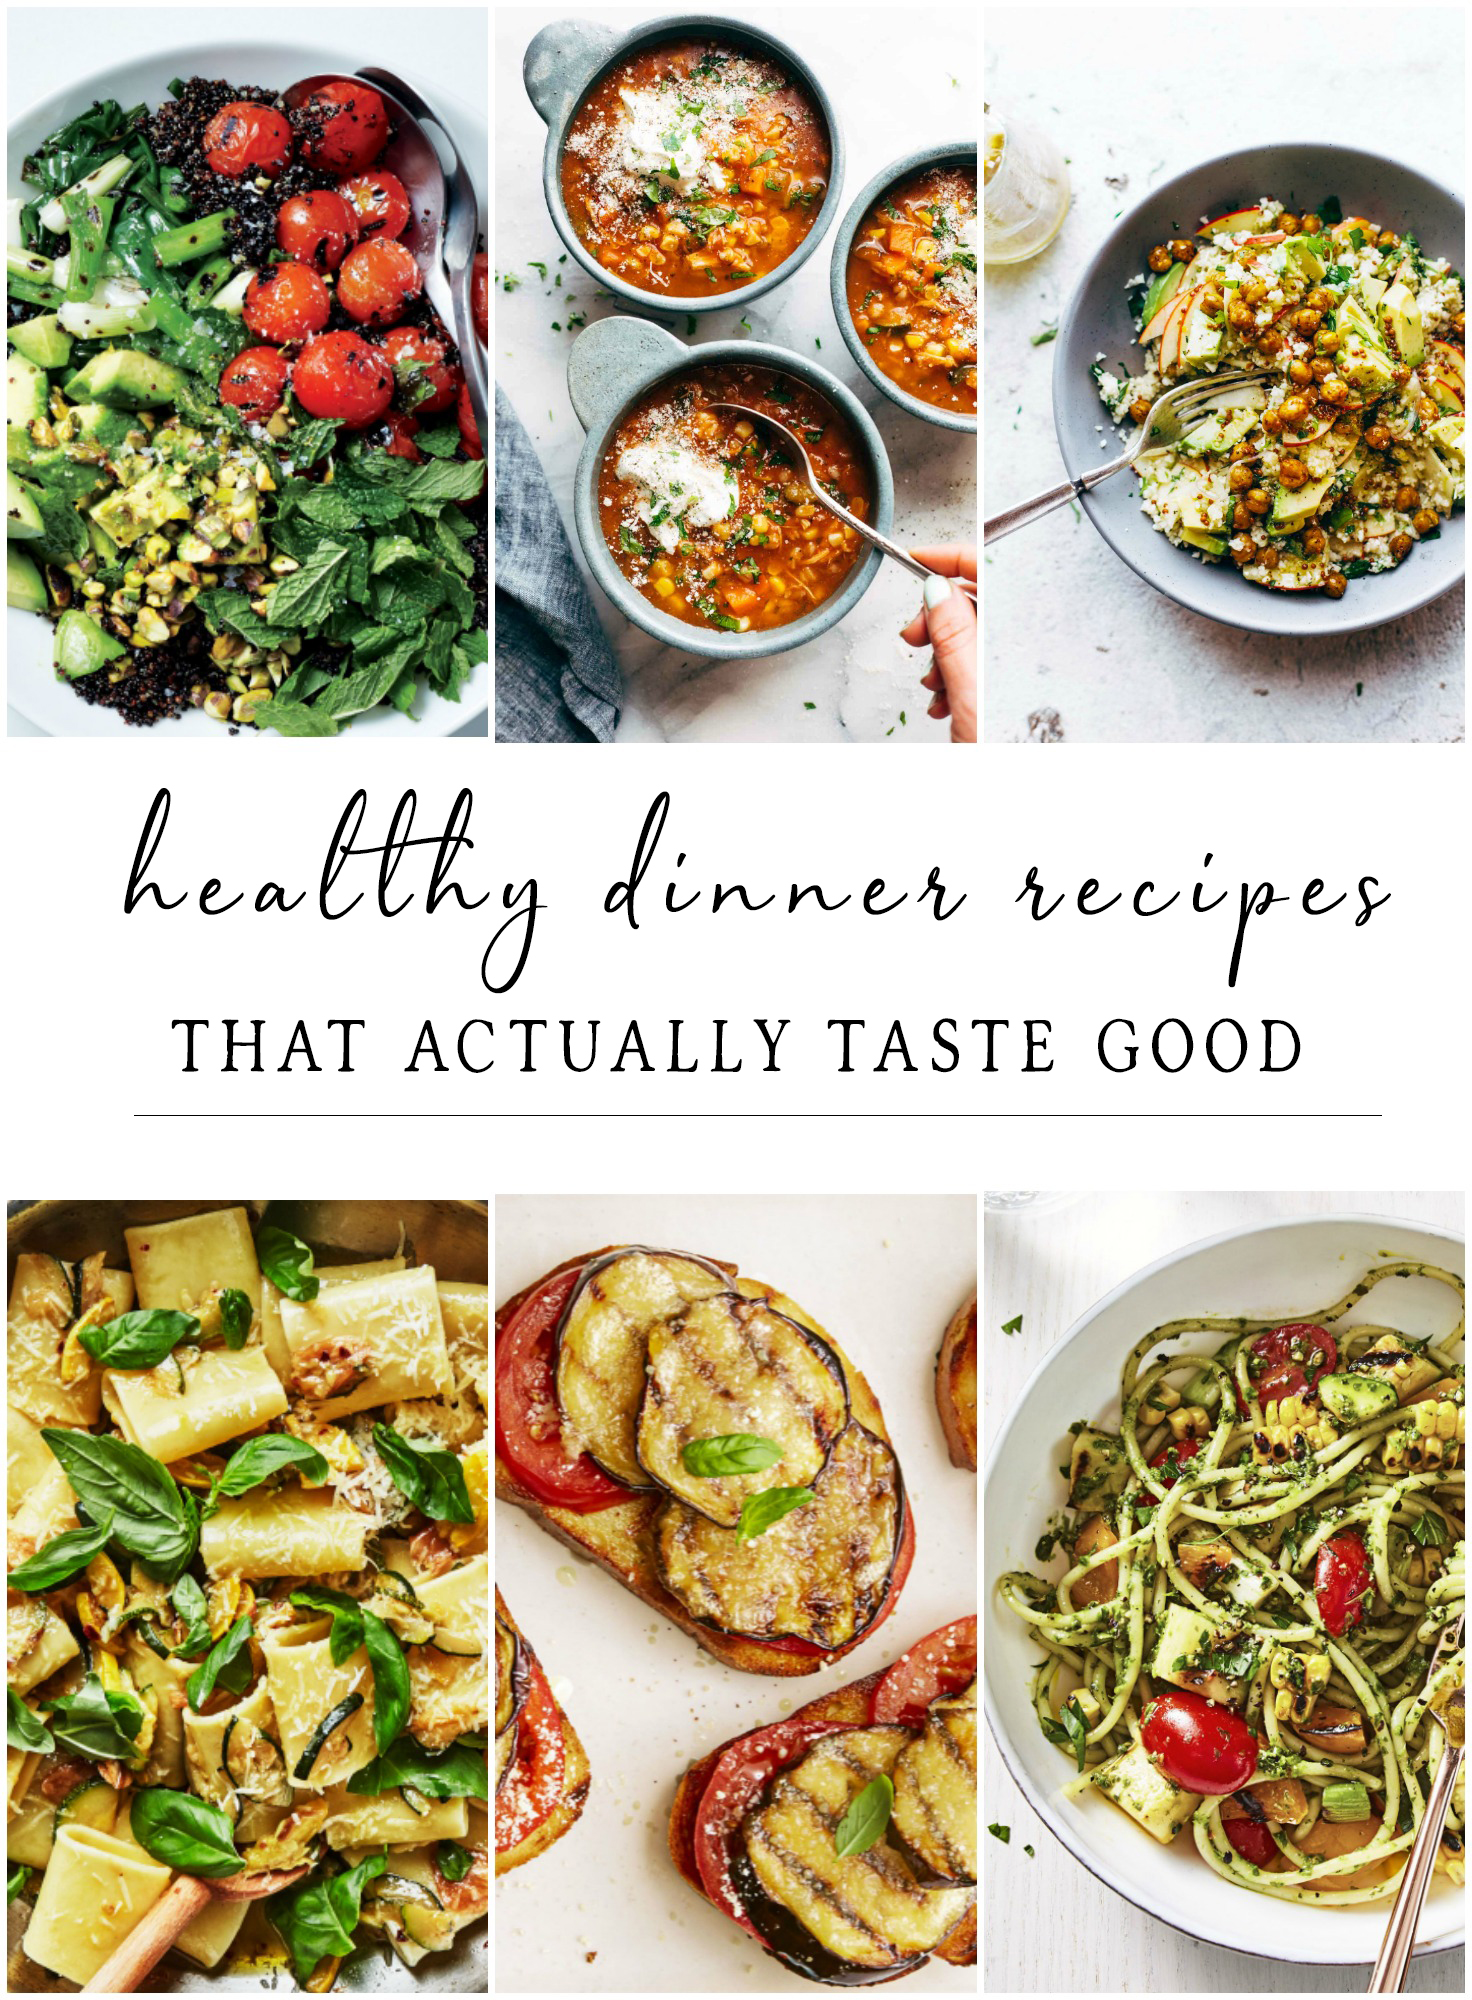 Easy healthy dinner recipes for Summer or even as early as Spring from Chicago lifestyle blogger Happily Inspired. These recipes taste great!